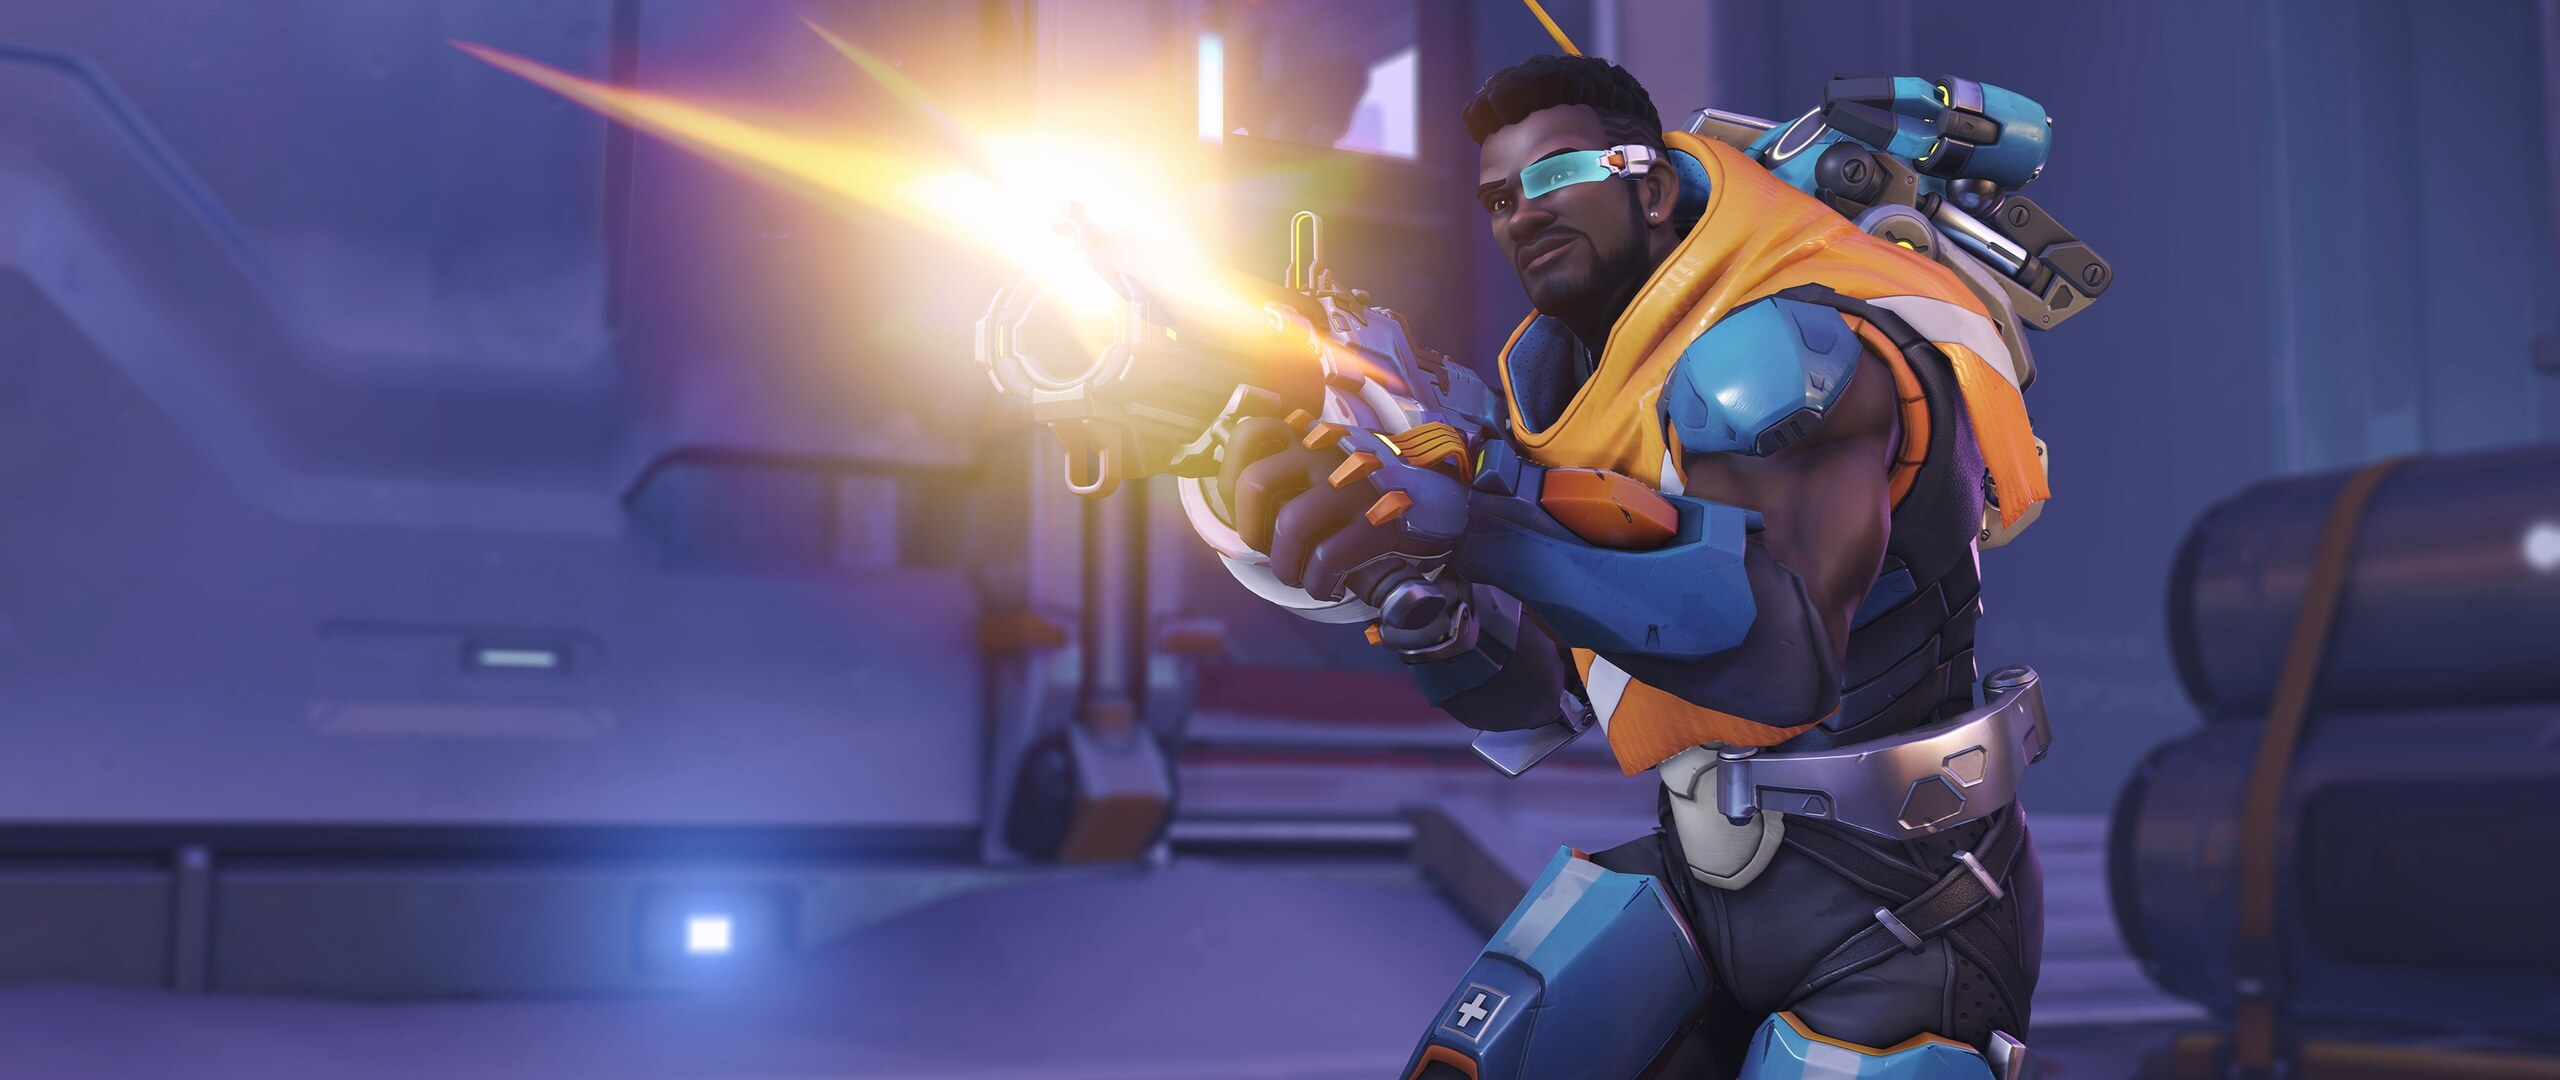 baptiste-overwatch-video-game-tb.jpg